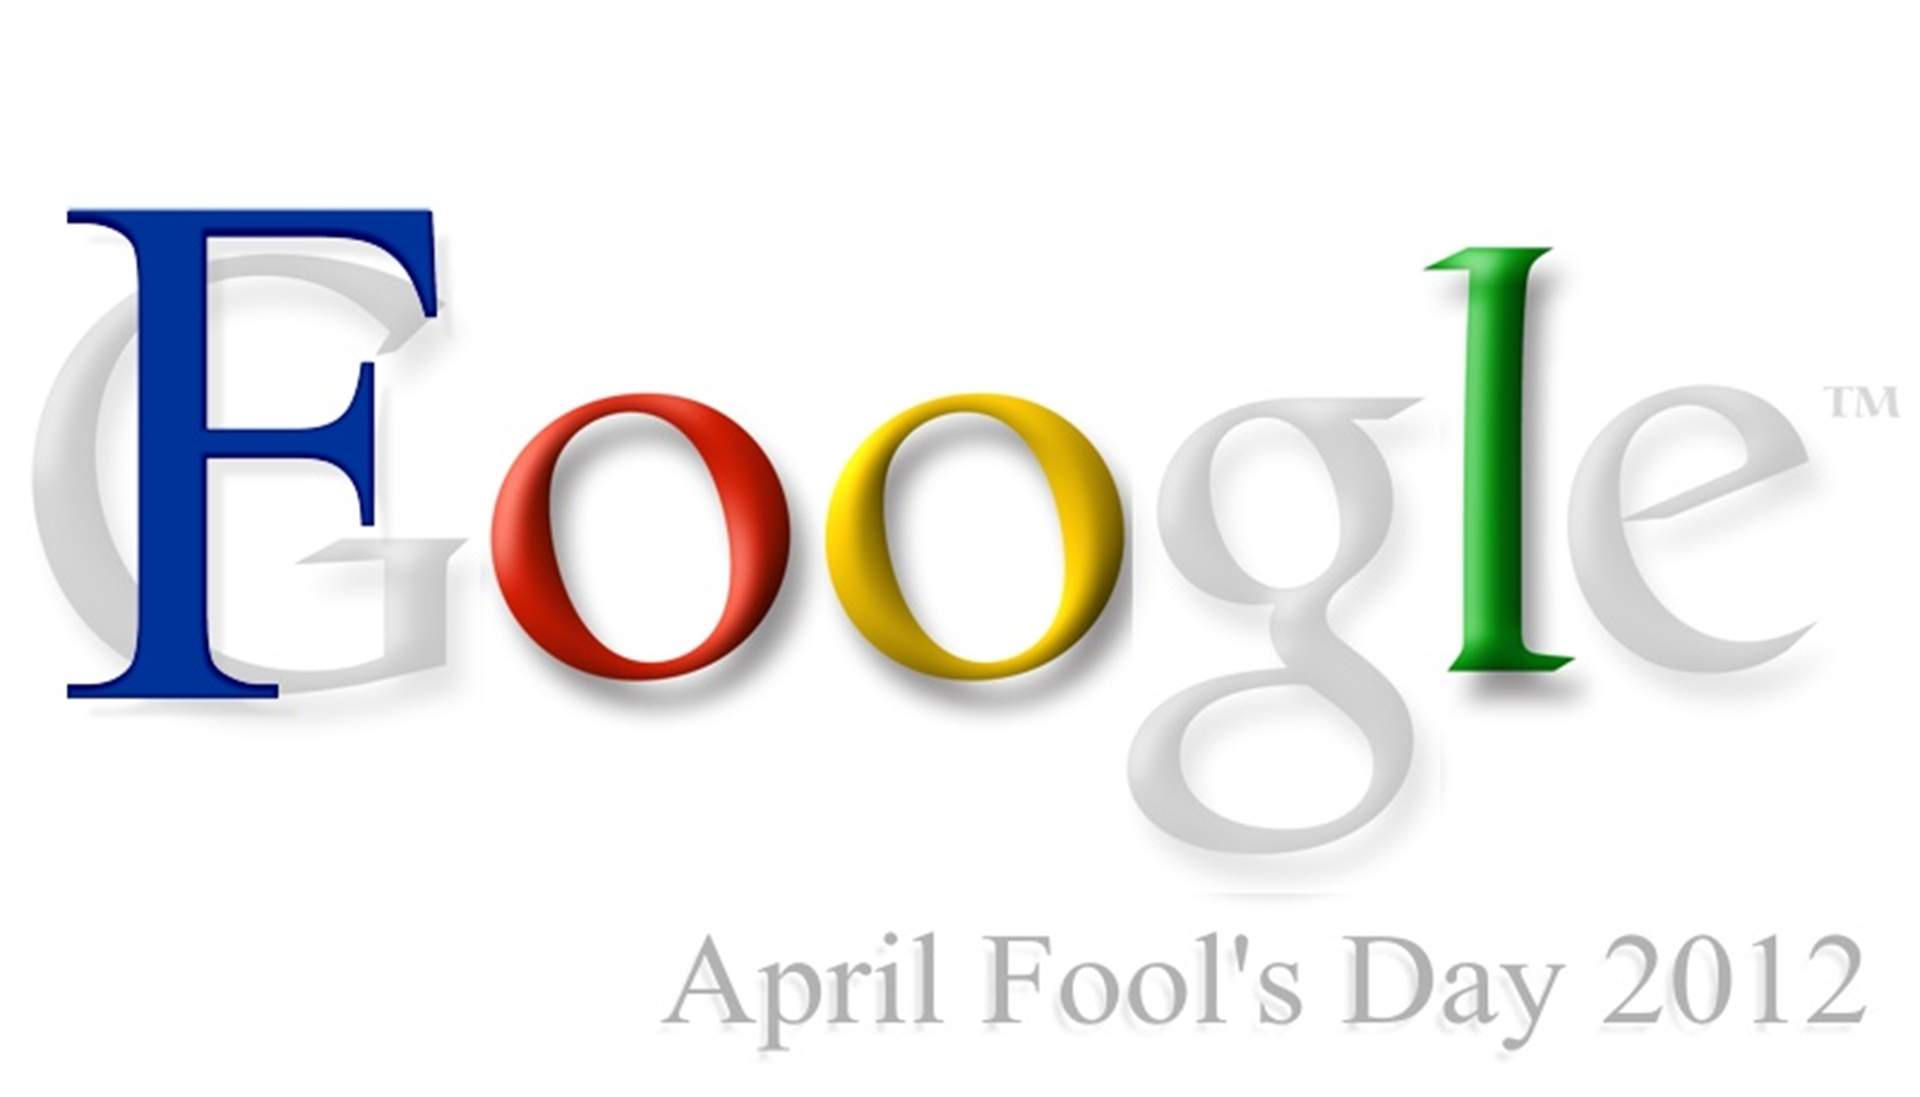 April Fools Pranks 2012